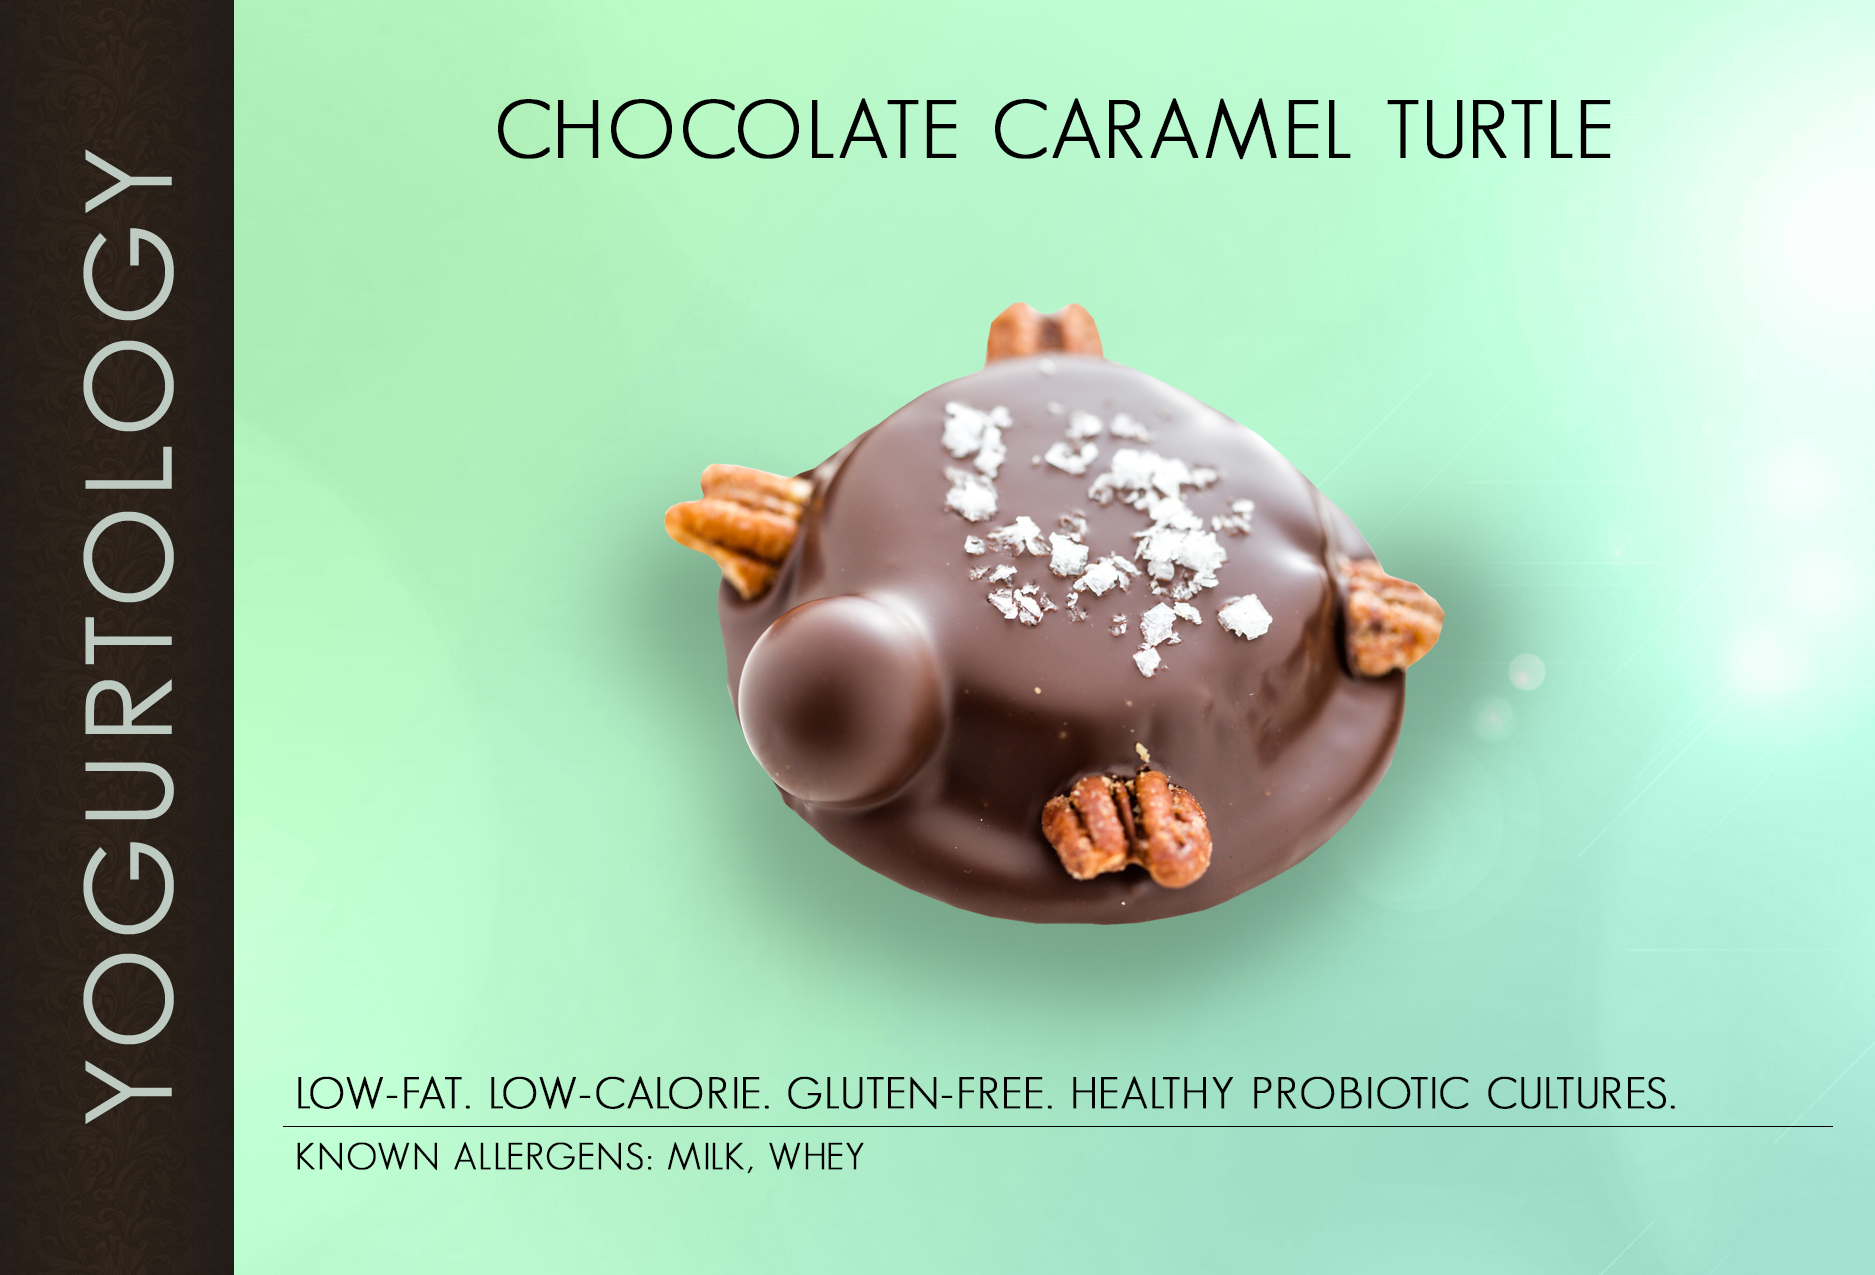 Chocolate Caramel Turtle